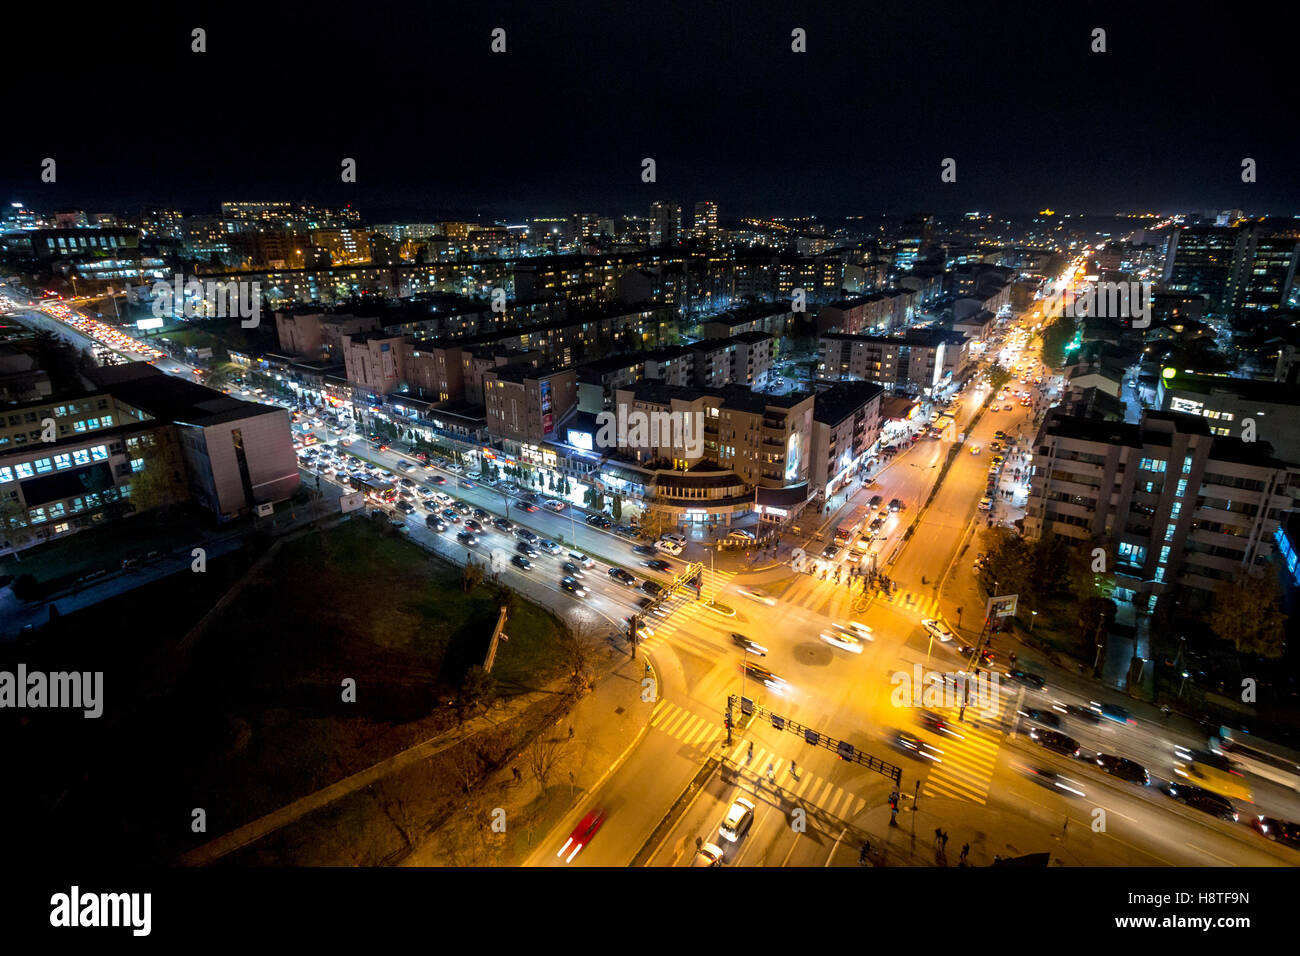 Night view of the crossroad between Bill Clinton Boulevard and George W Bush Boulevard in Pristina, Kosovo. - Stock Image